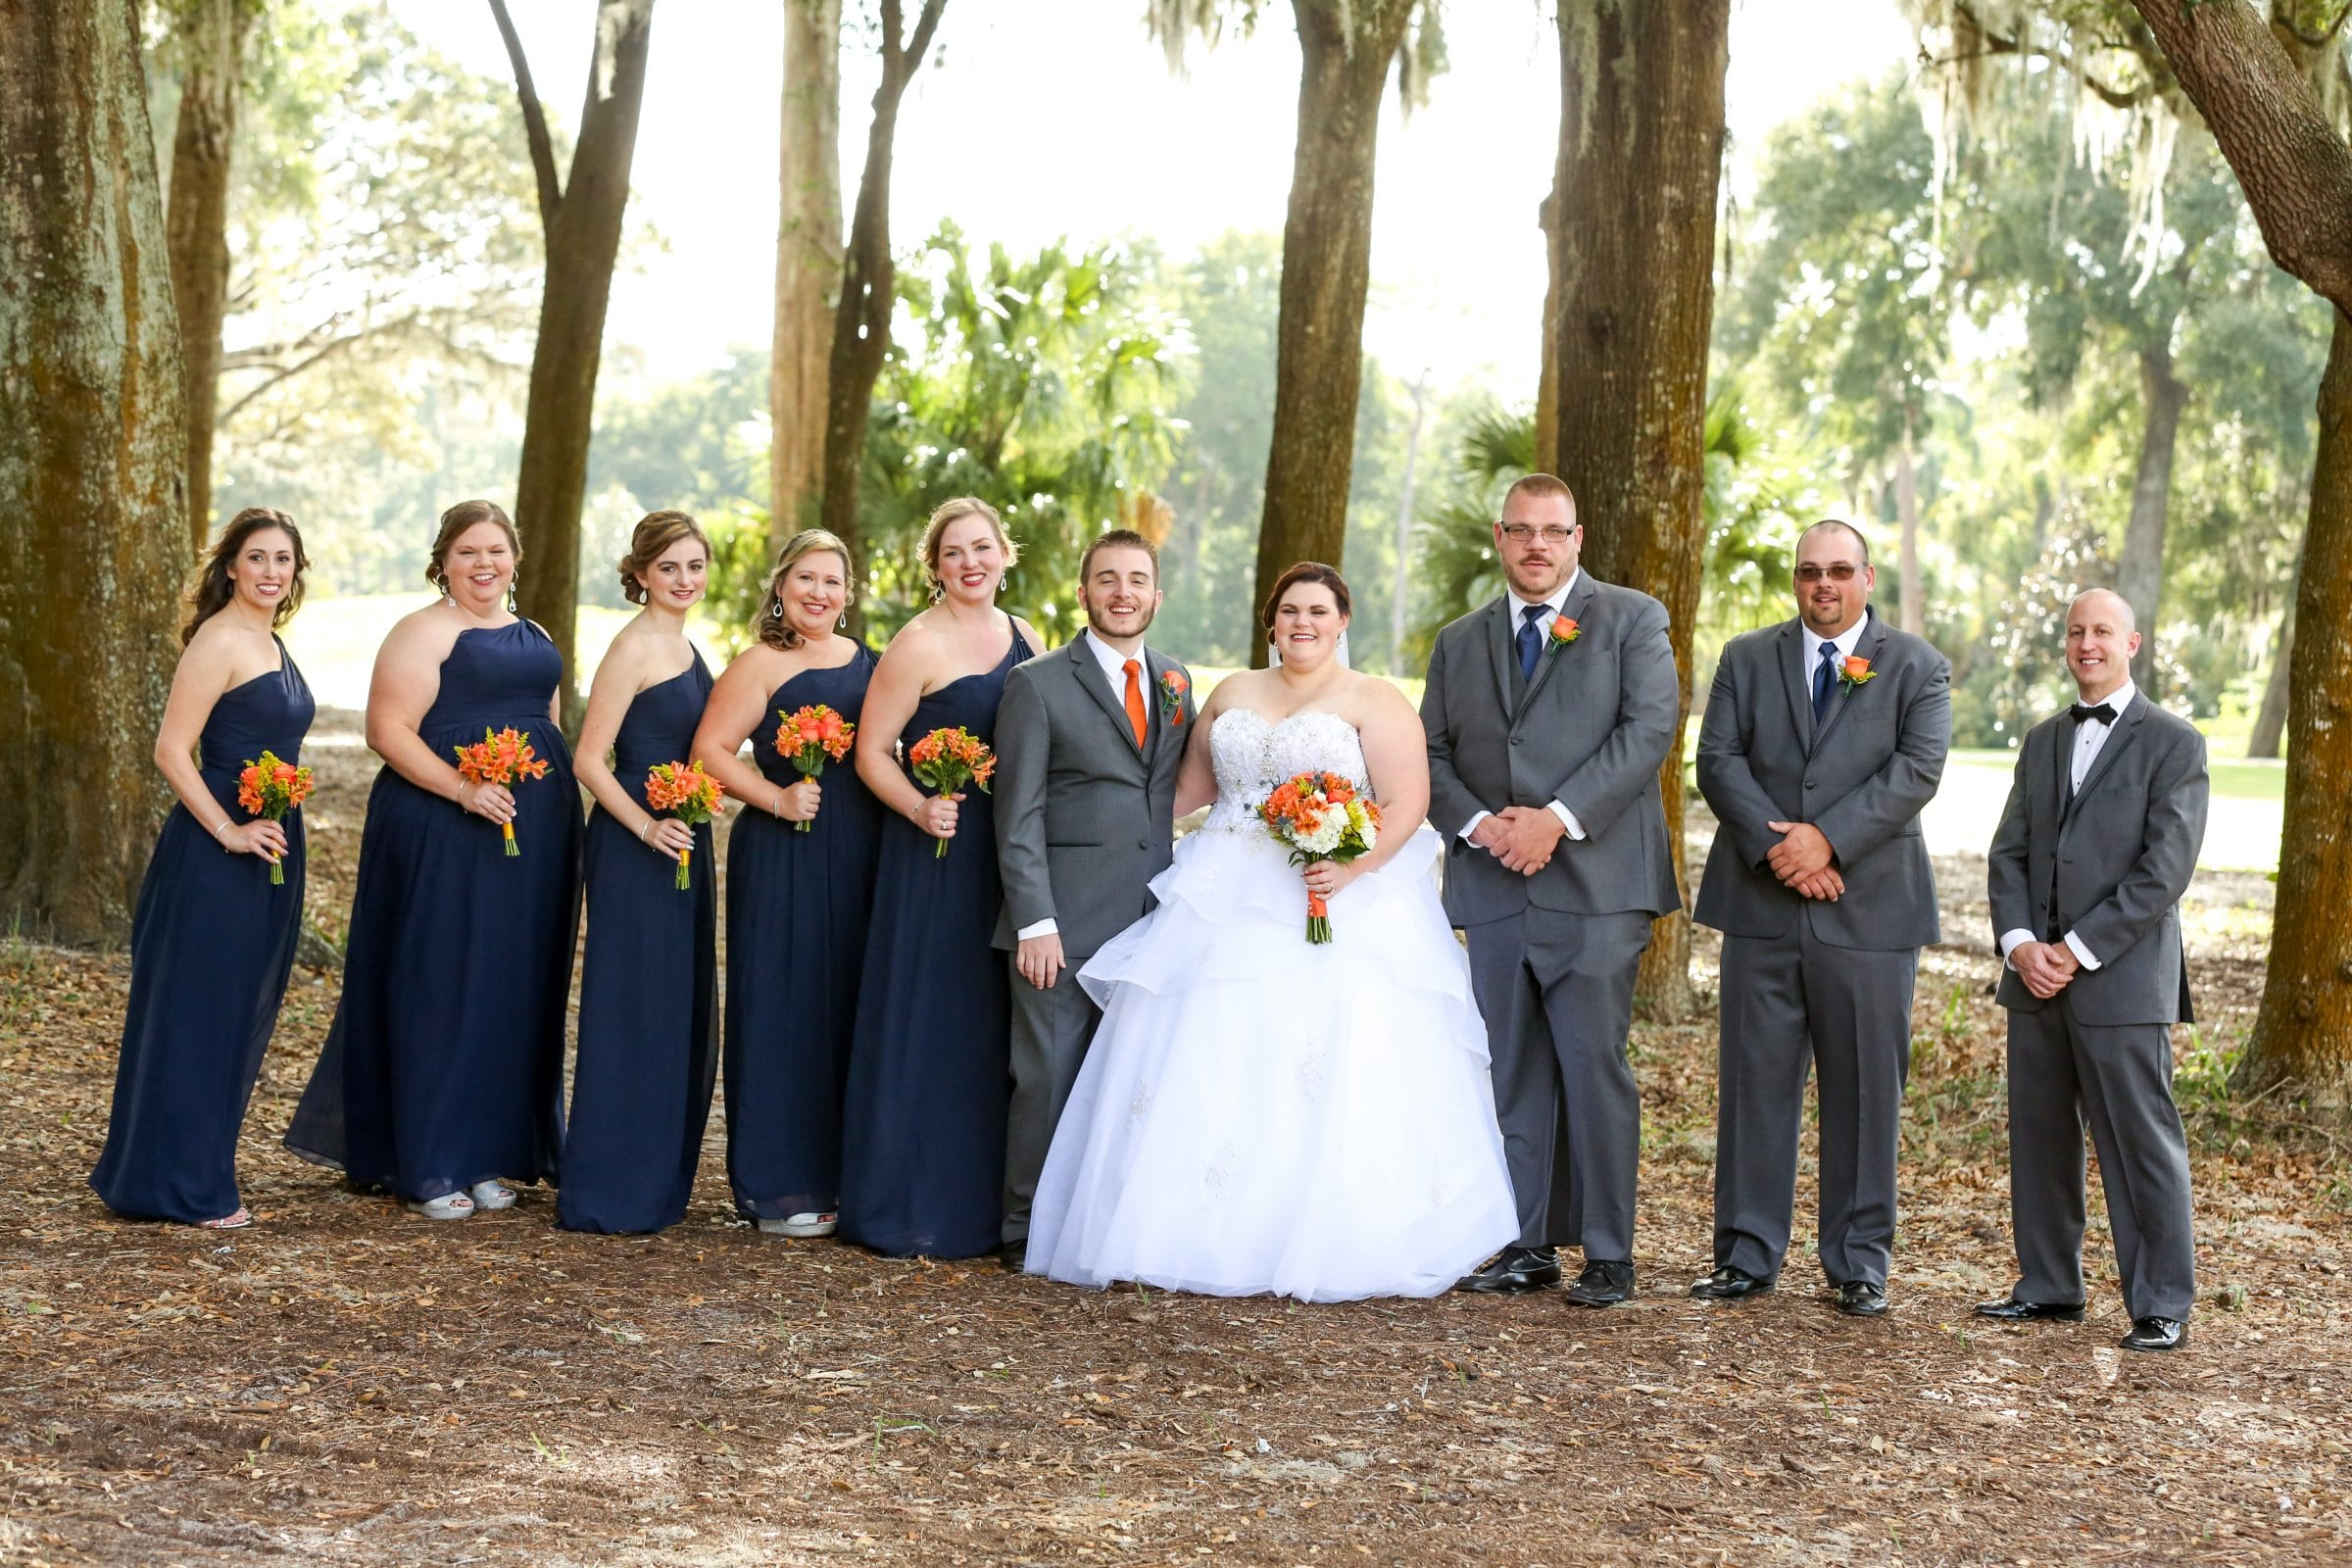 Wedding party with navy bridesmaids dresses and grey suits in Florida forest